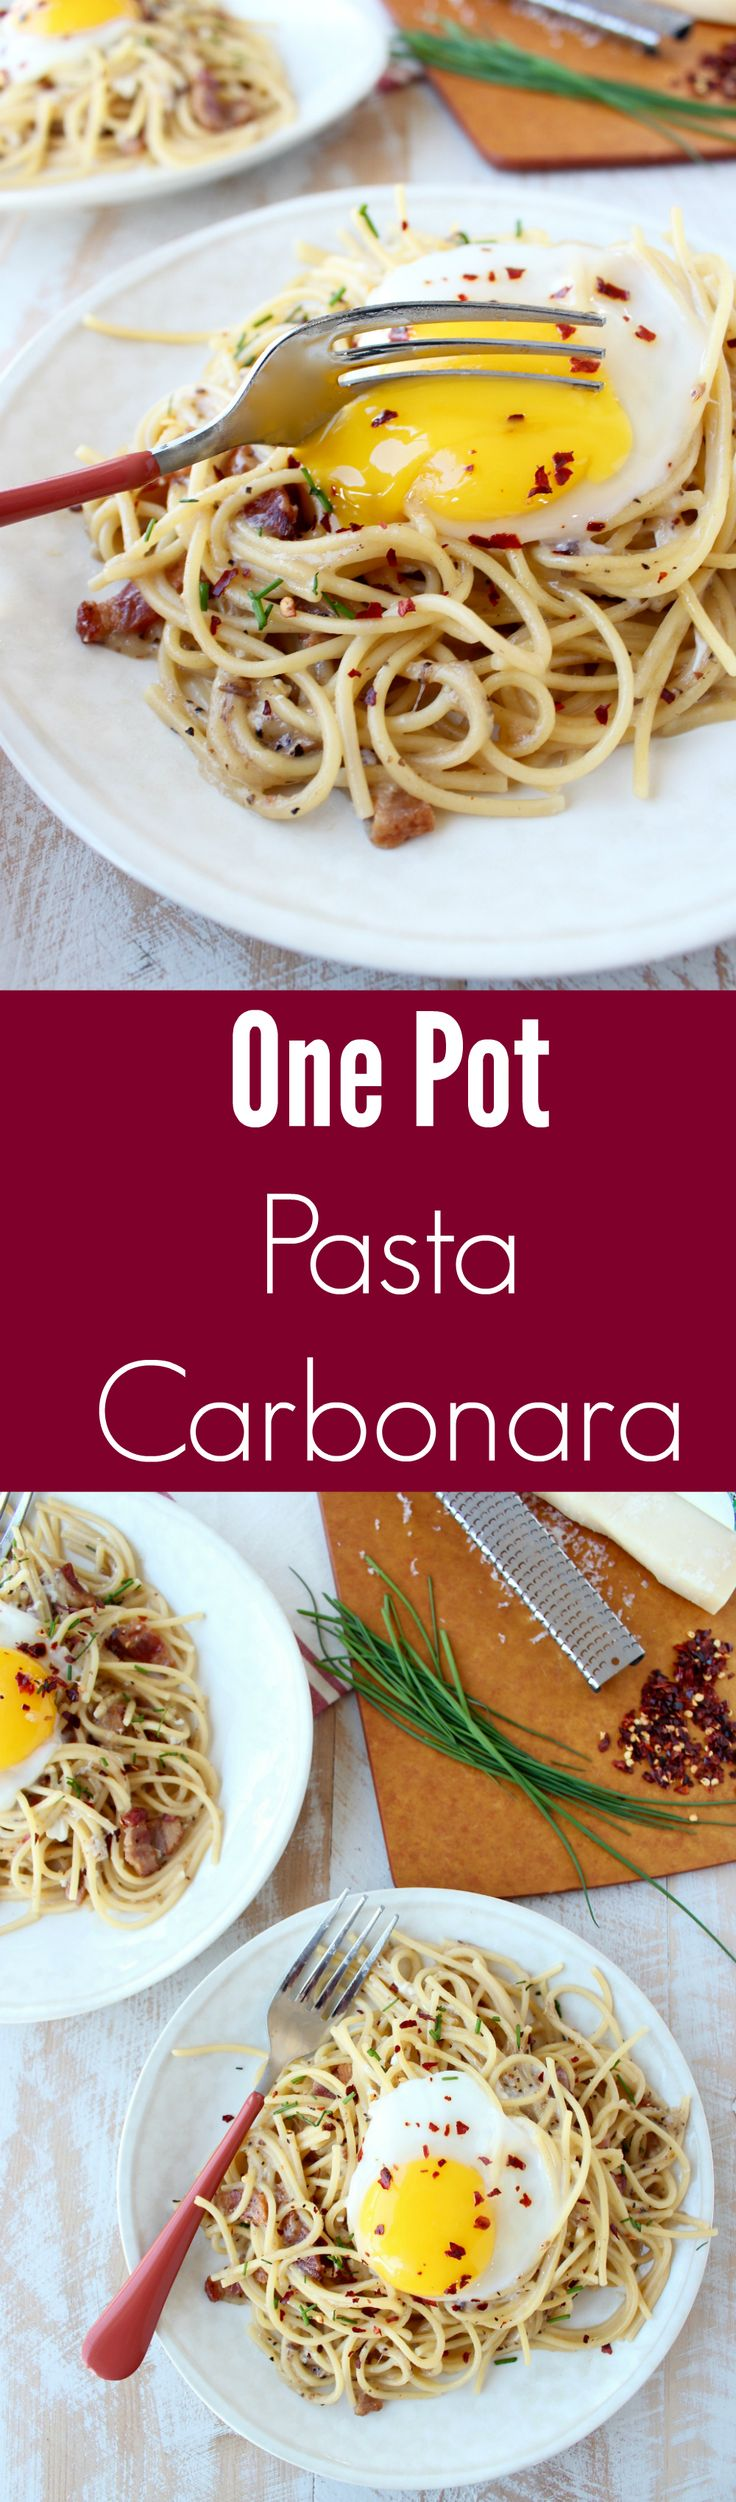 All the deliciousness of Pasta Carbonara, made in one pot, in 30 minutes! This dish is perfect served on World Market Muir Plates!  #WorldMarketTribe